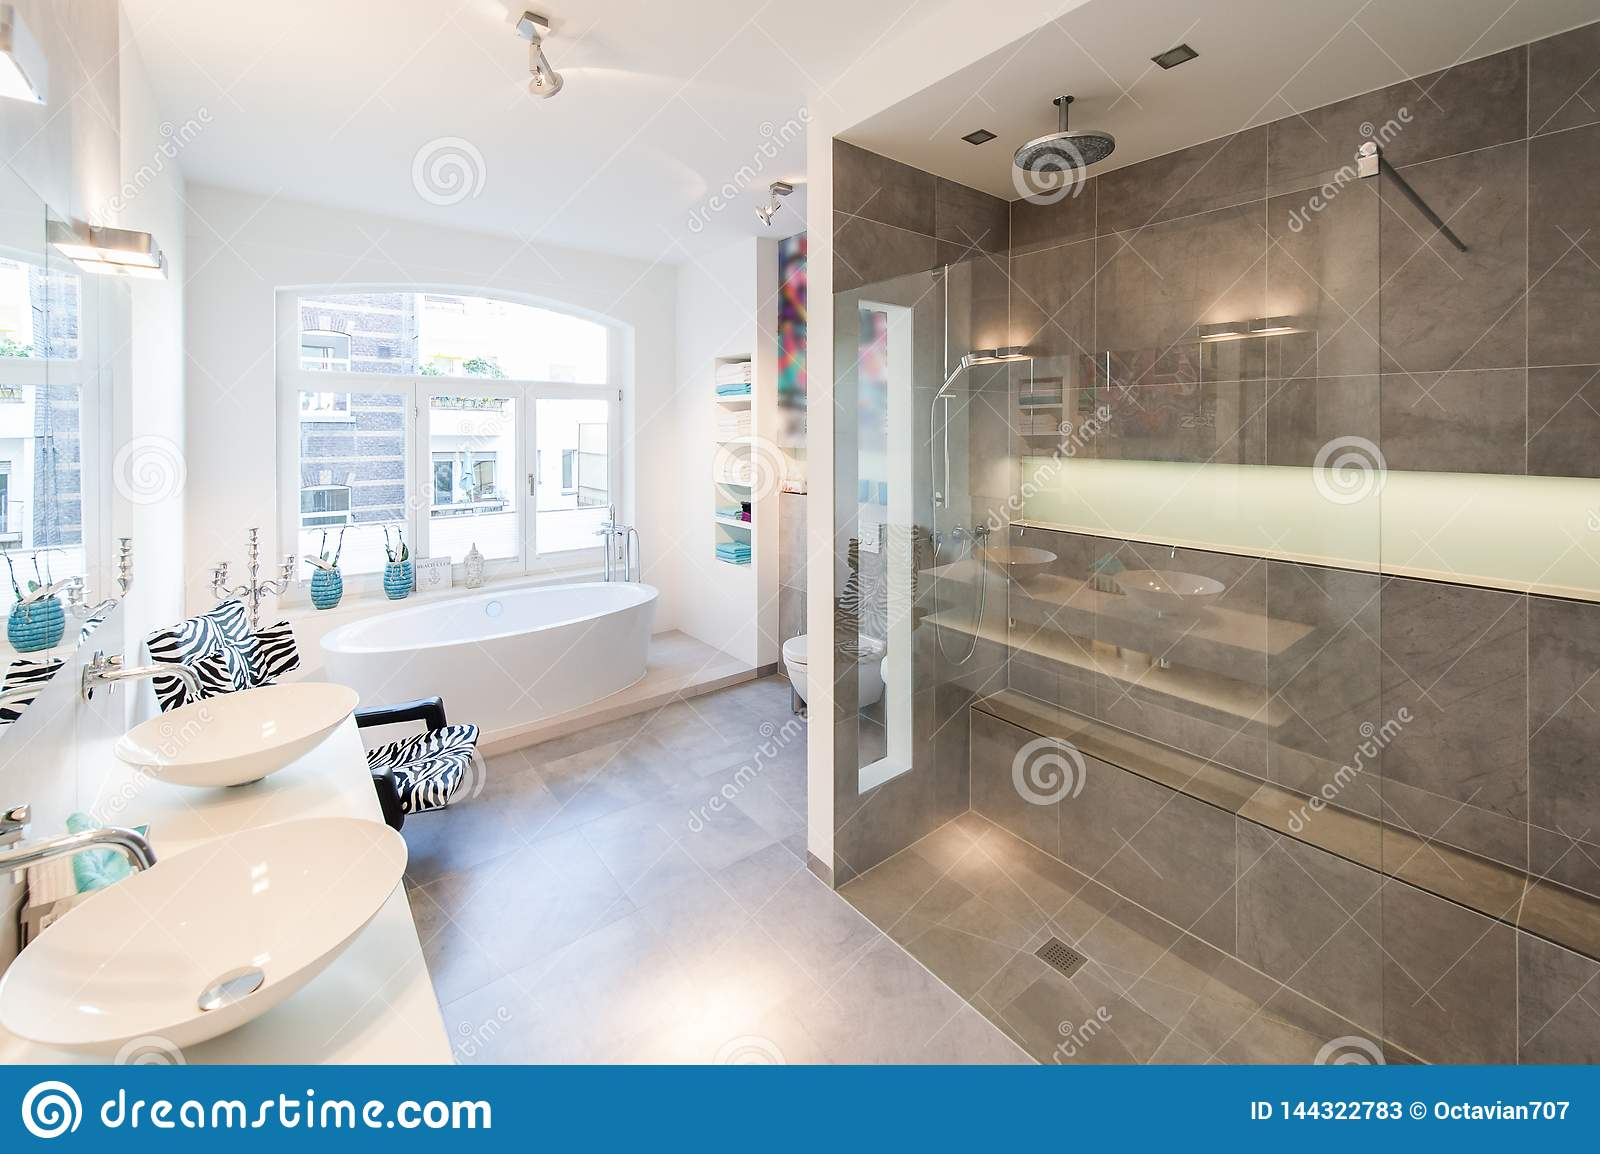 Modern Interior Of A Bath Room With Big Shower Cabin Stock Image Image Of Decor Interior 144322783